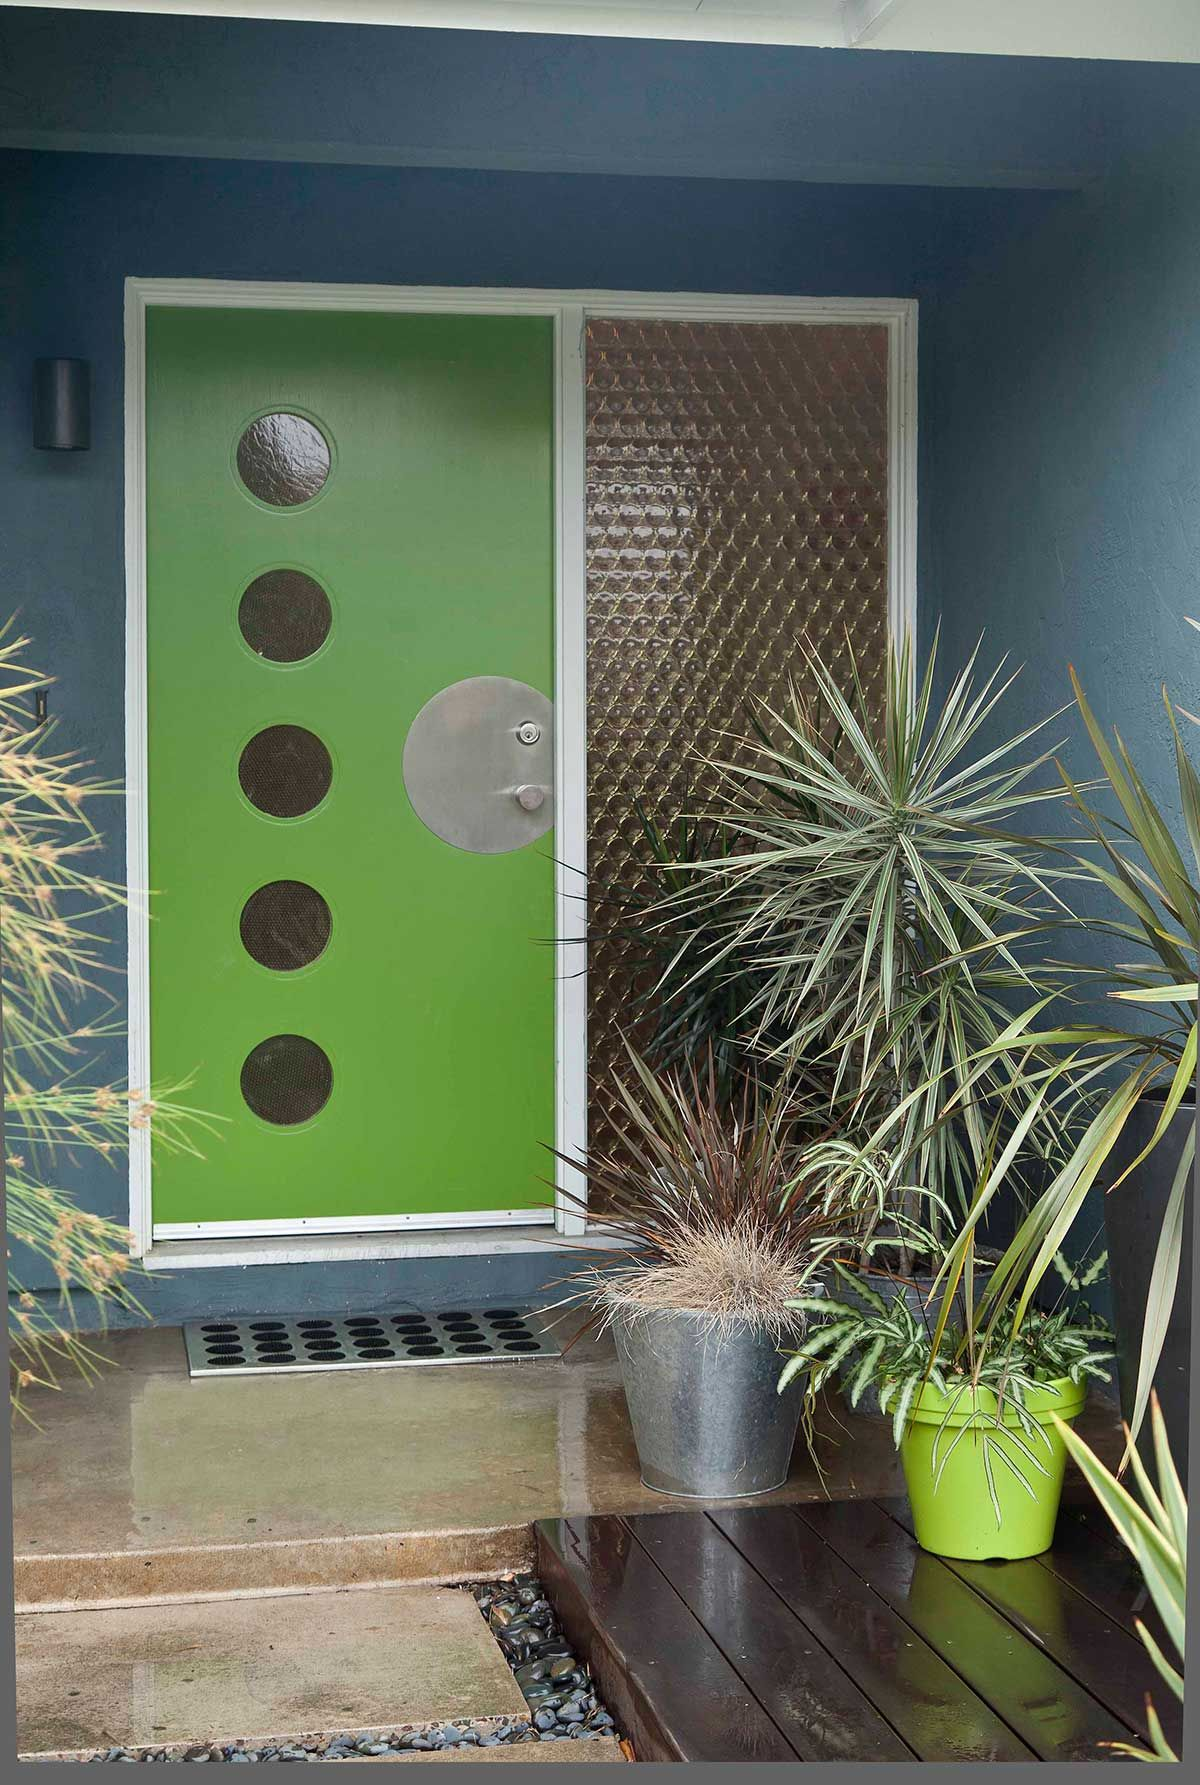 the green door and potted plants make this mid century